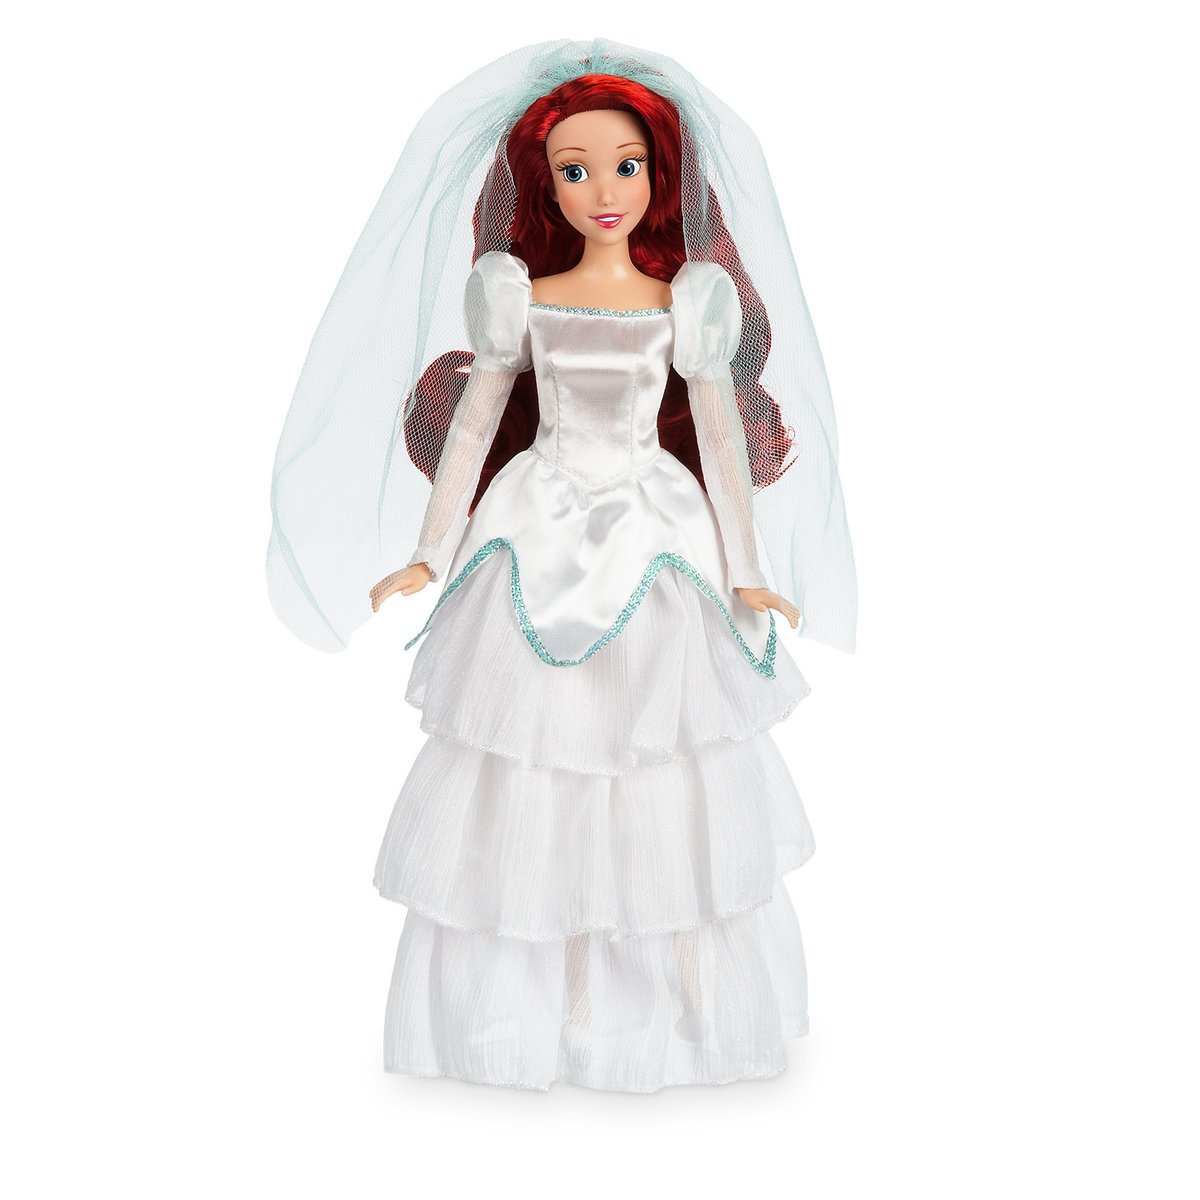 Ariel Wedding Classic Doll In Her White Satin Wedding Dress 11 1 2